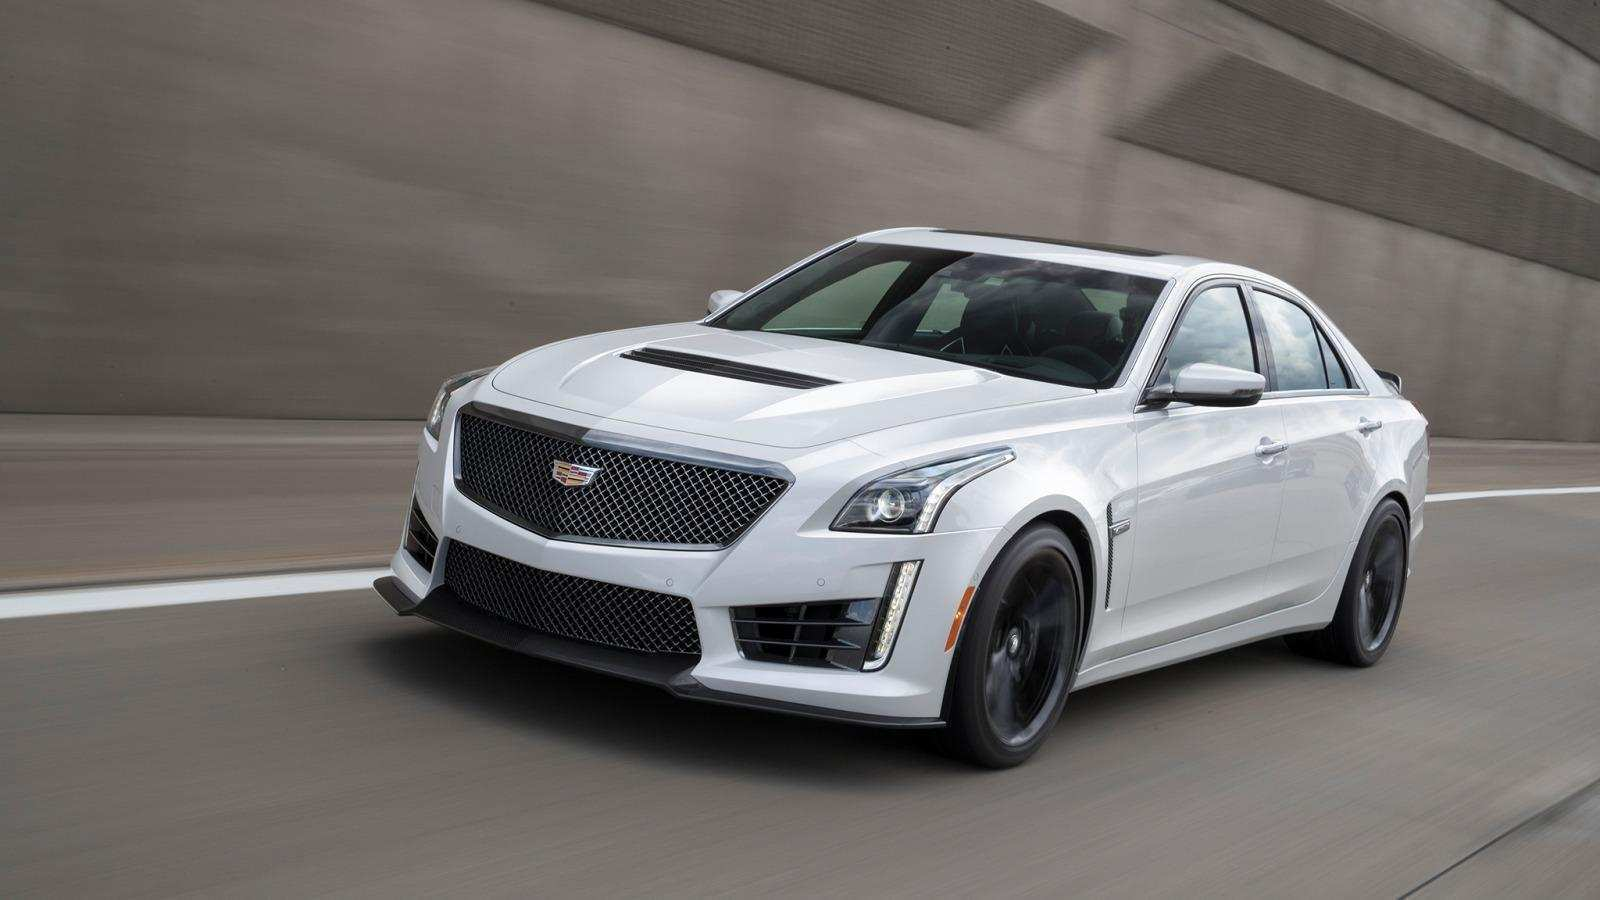 29 Great 2019 Cts V Coupe Prices for 2019 Cts V Coupe